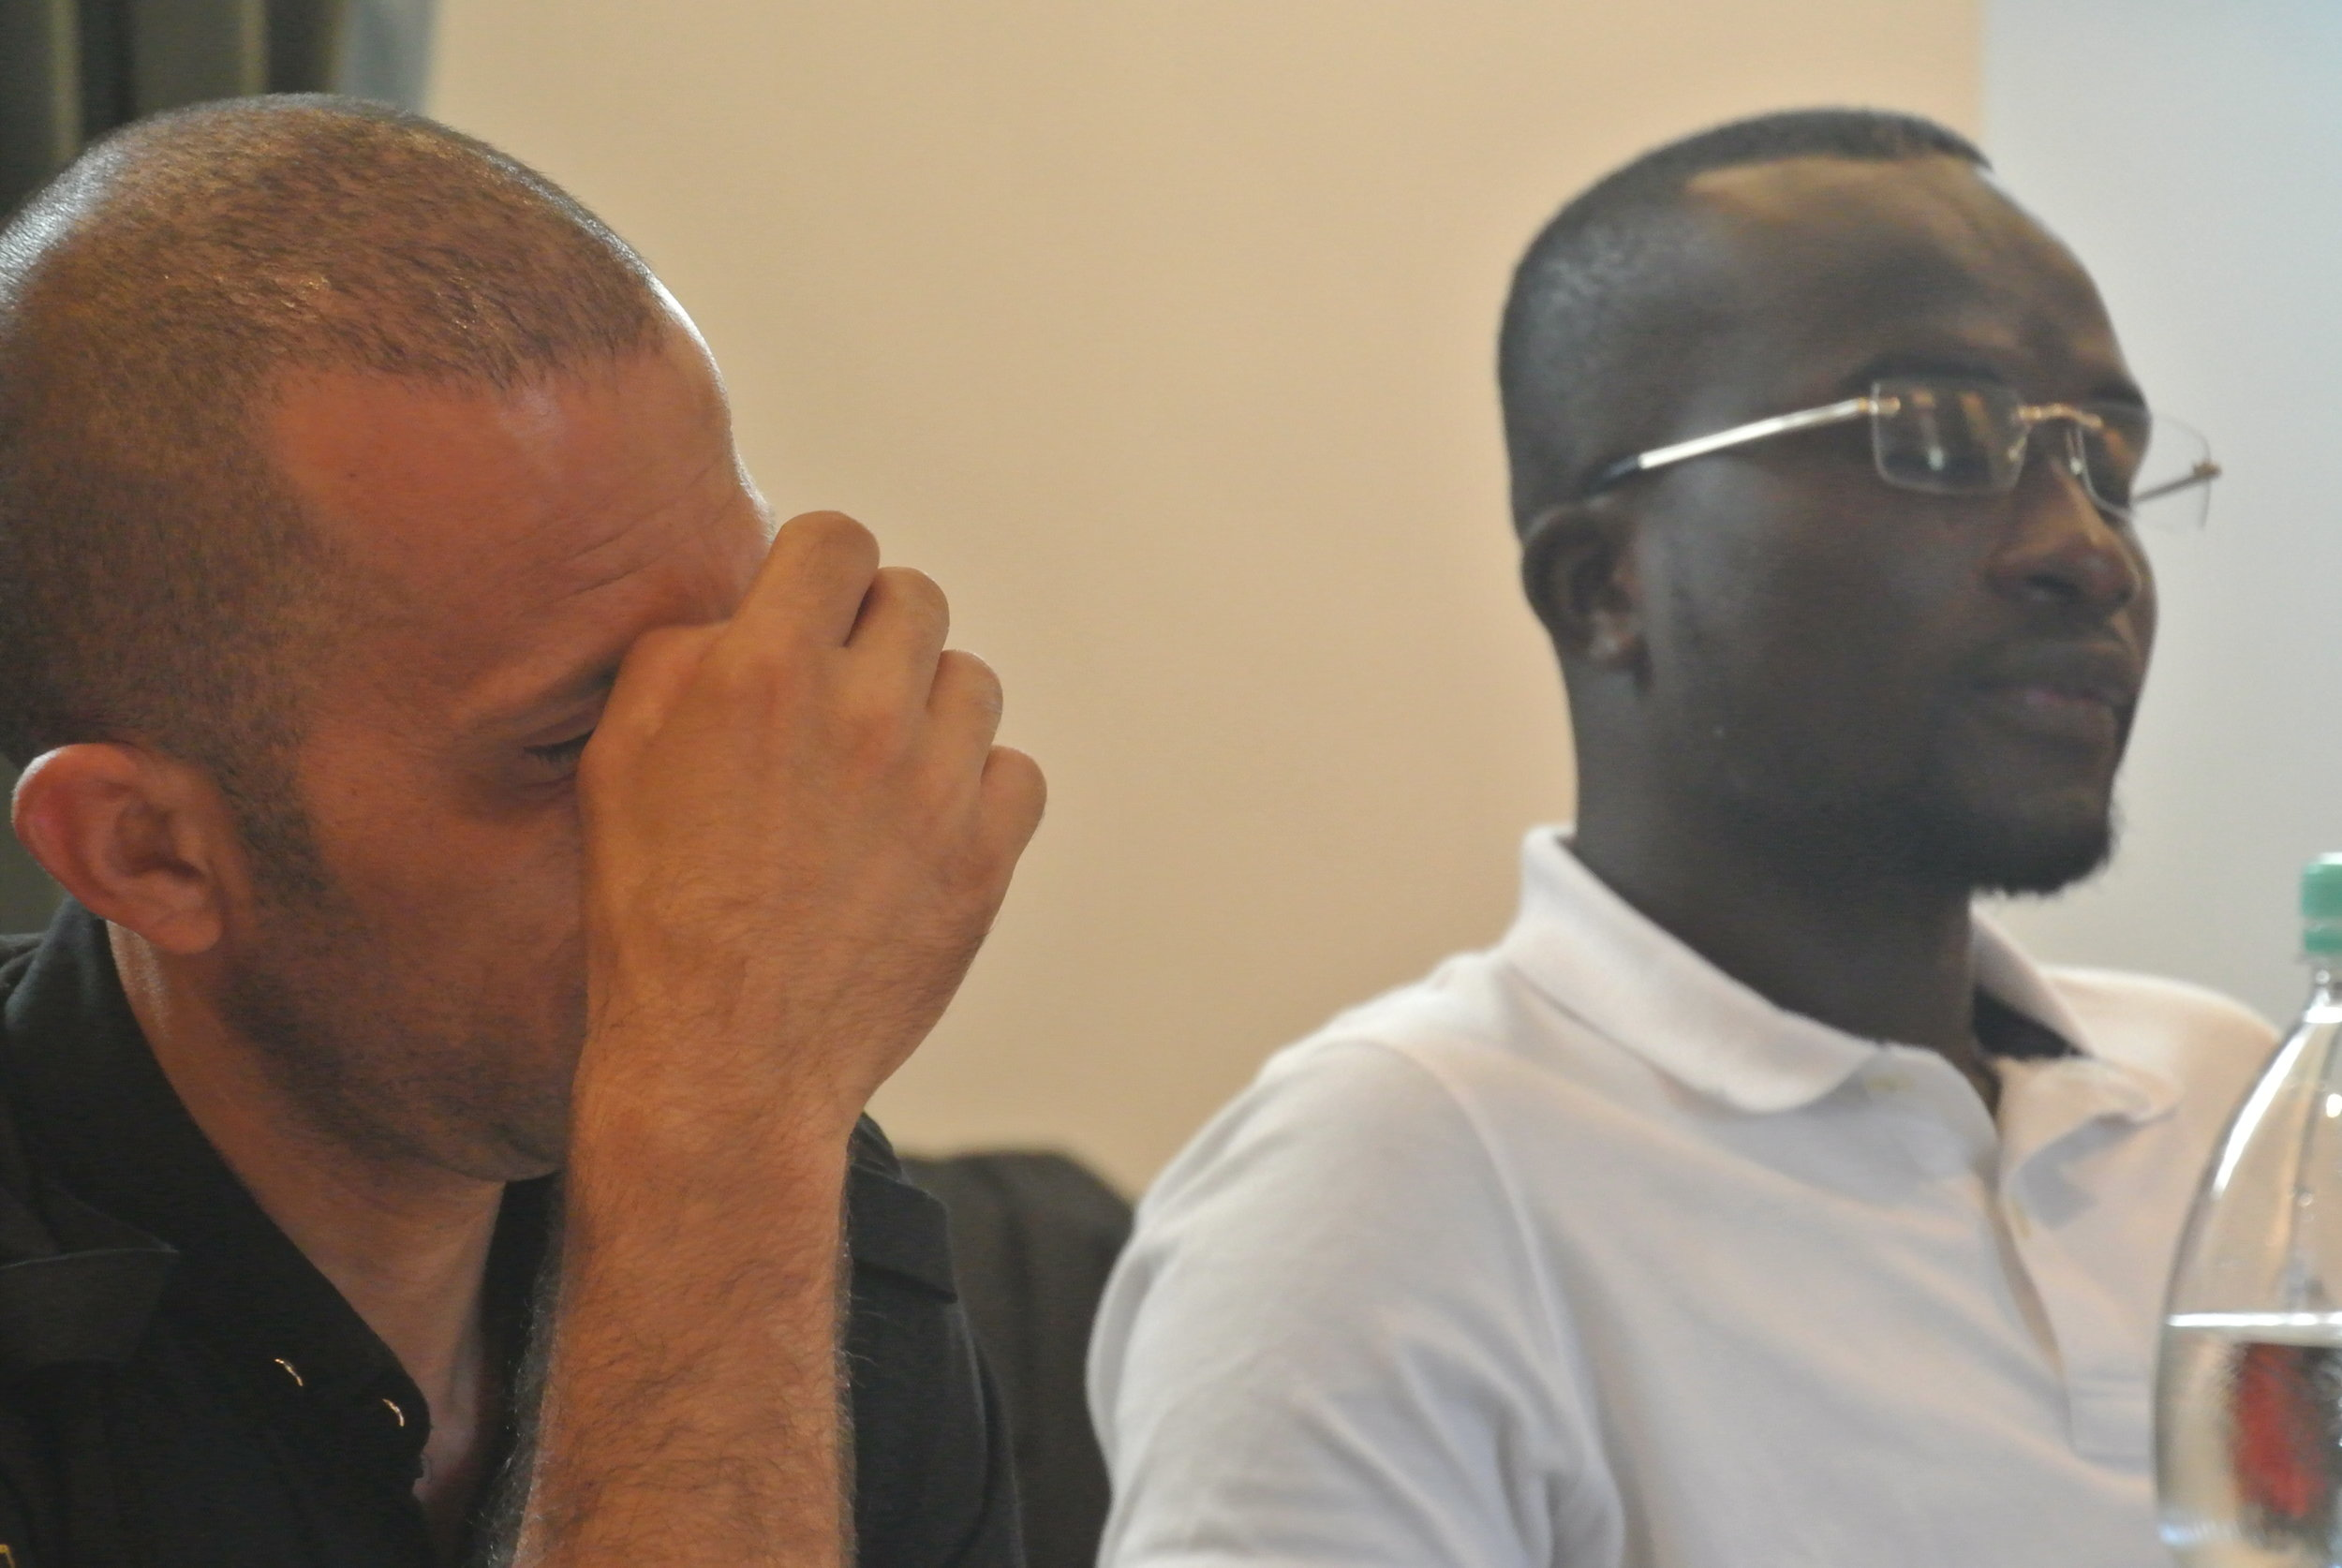 Walid grips his brow while listening to Bakary. The Embassy of Switzerland, Rome. 11 June 2018.